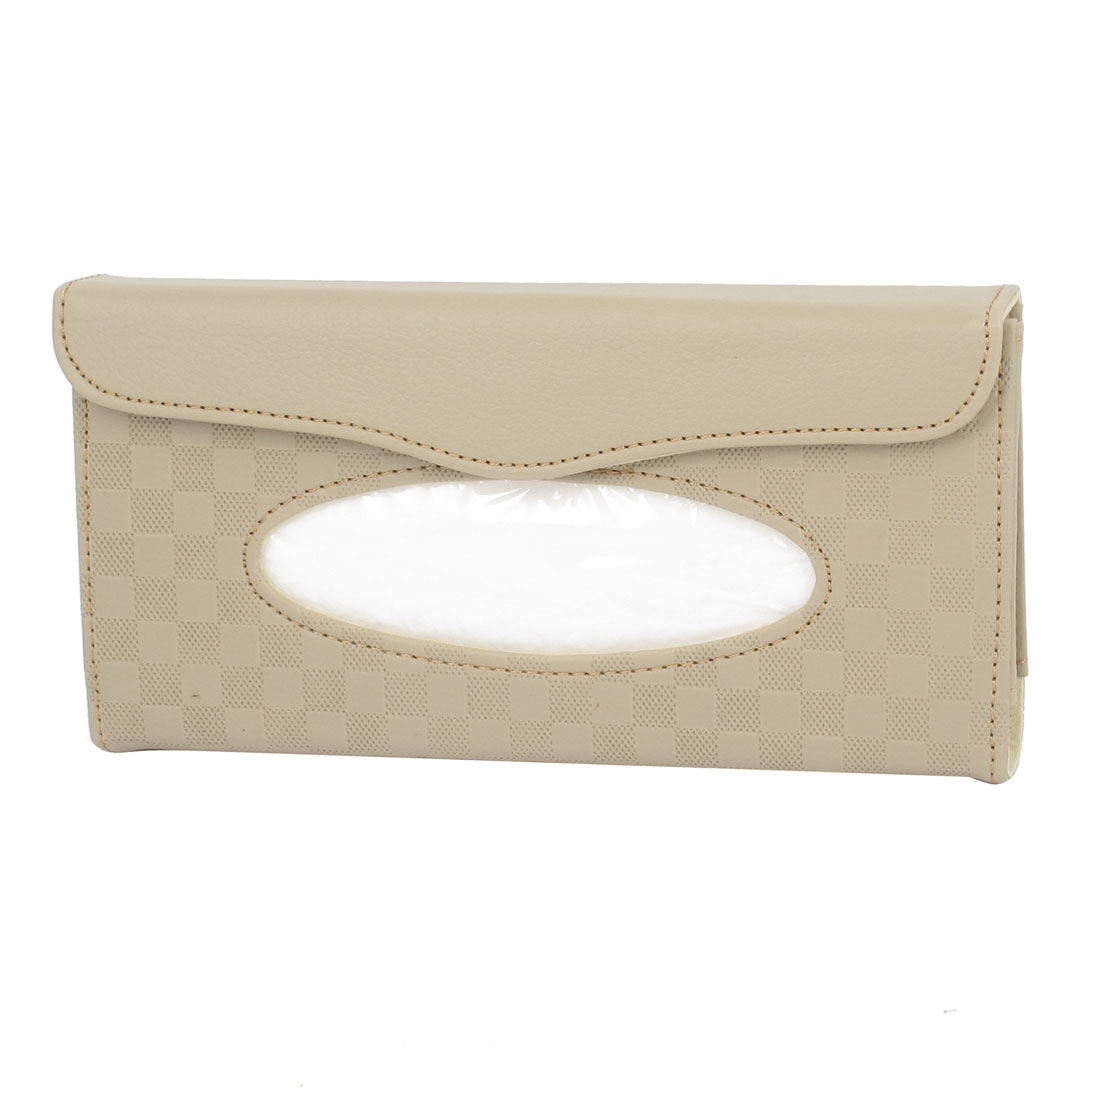 24 x 11 x 3cm Beige Rectangular Faux Leather Tissue Box Container for Auto Car